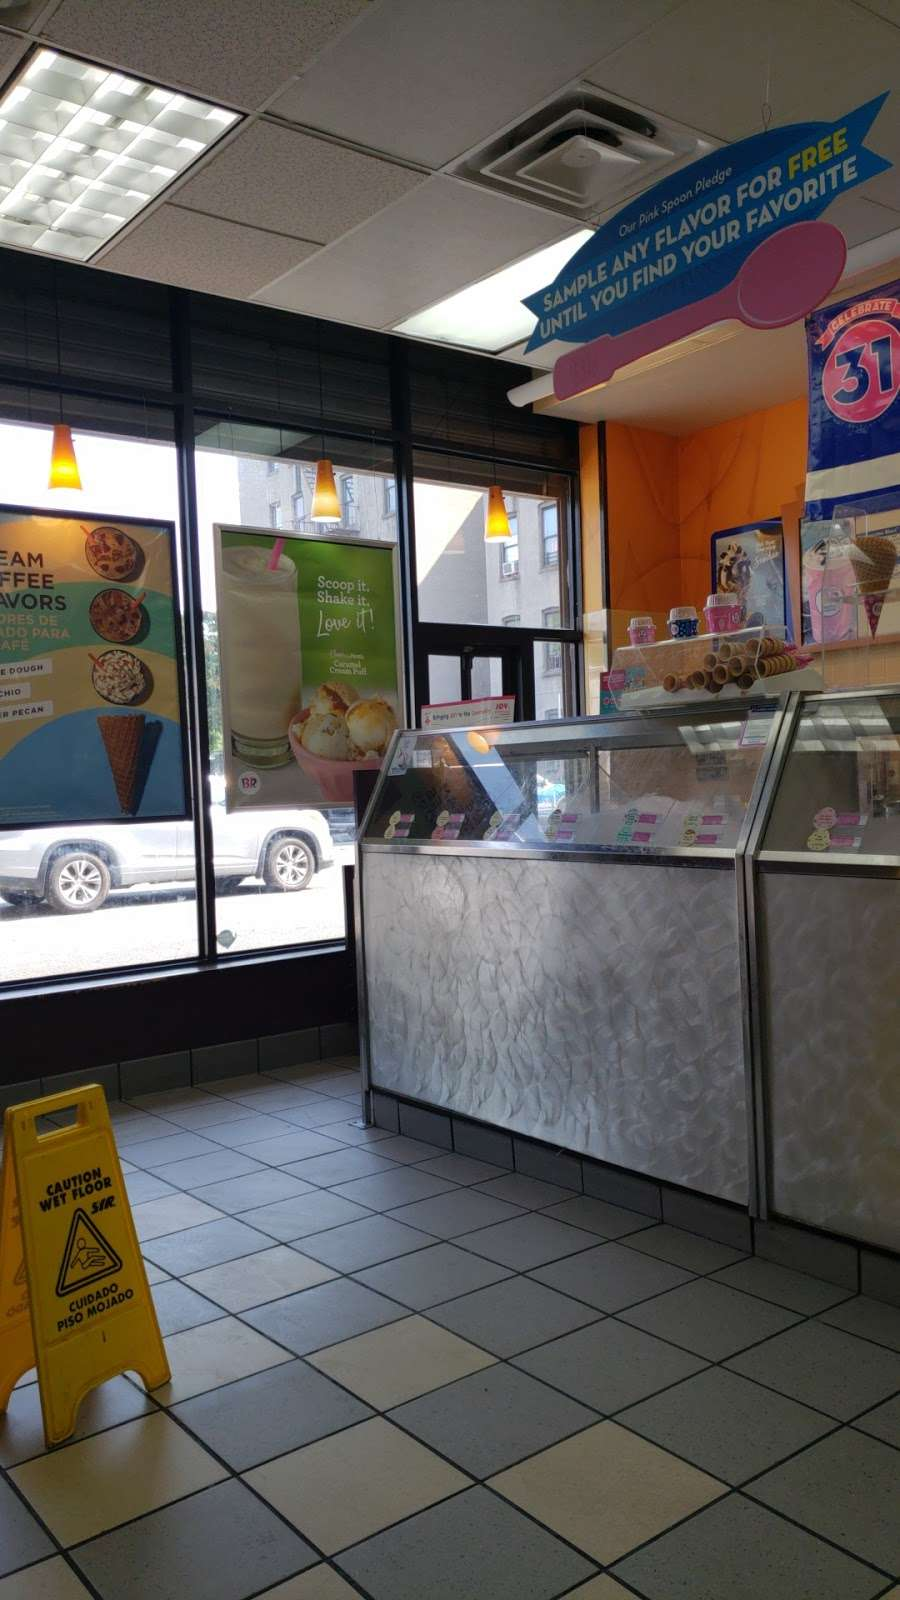 Dunkin Donuts - cafe  | Photo 3 of 10 | Address: 2241 Southern Blvd, Bronx, NY 10458, USA | Phone: (718) 220-4946